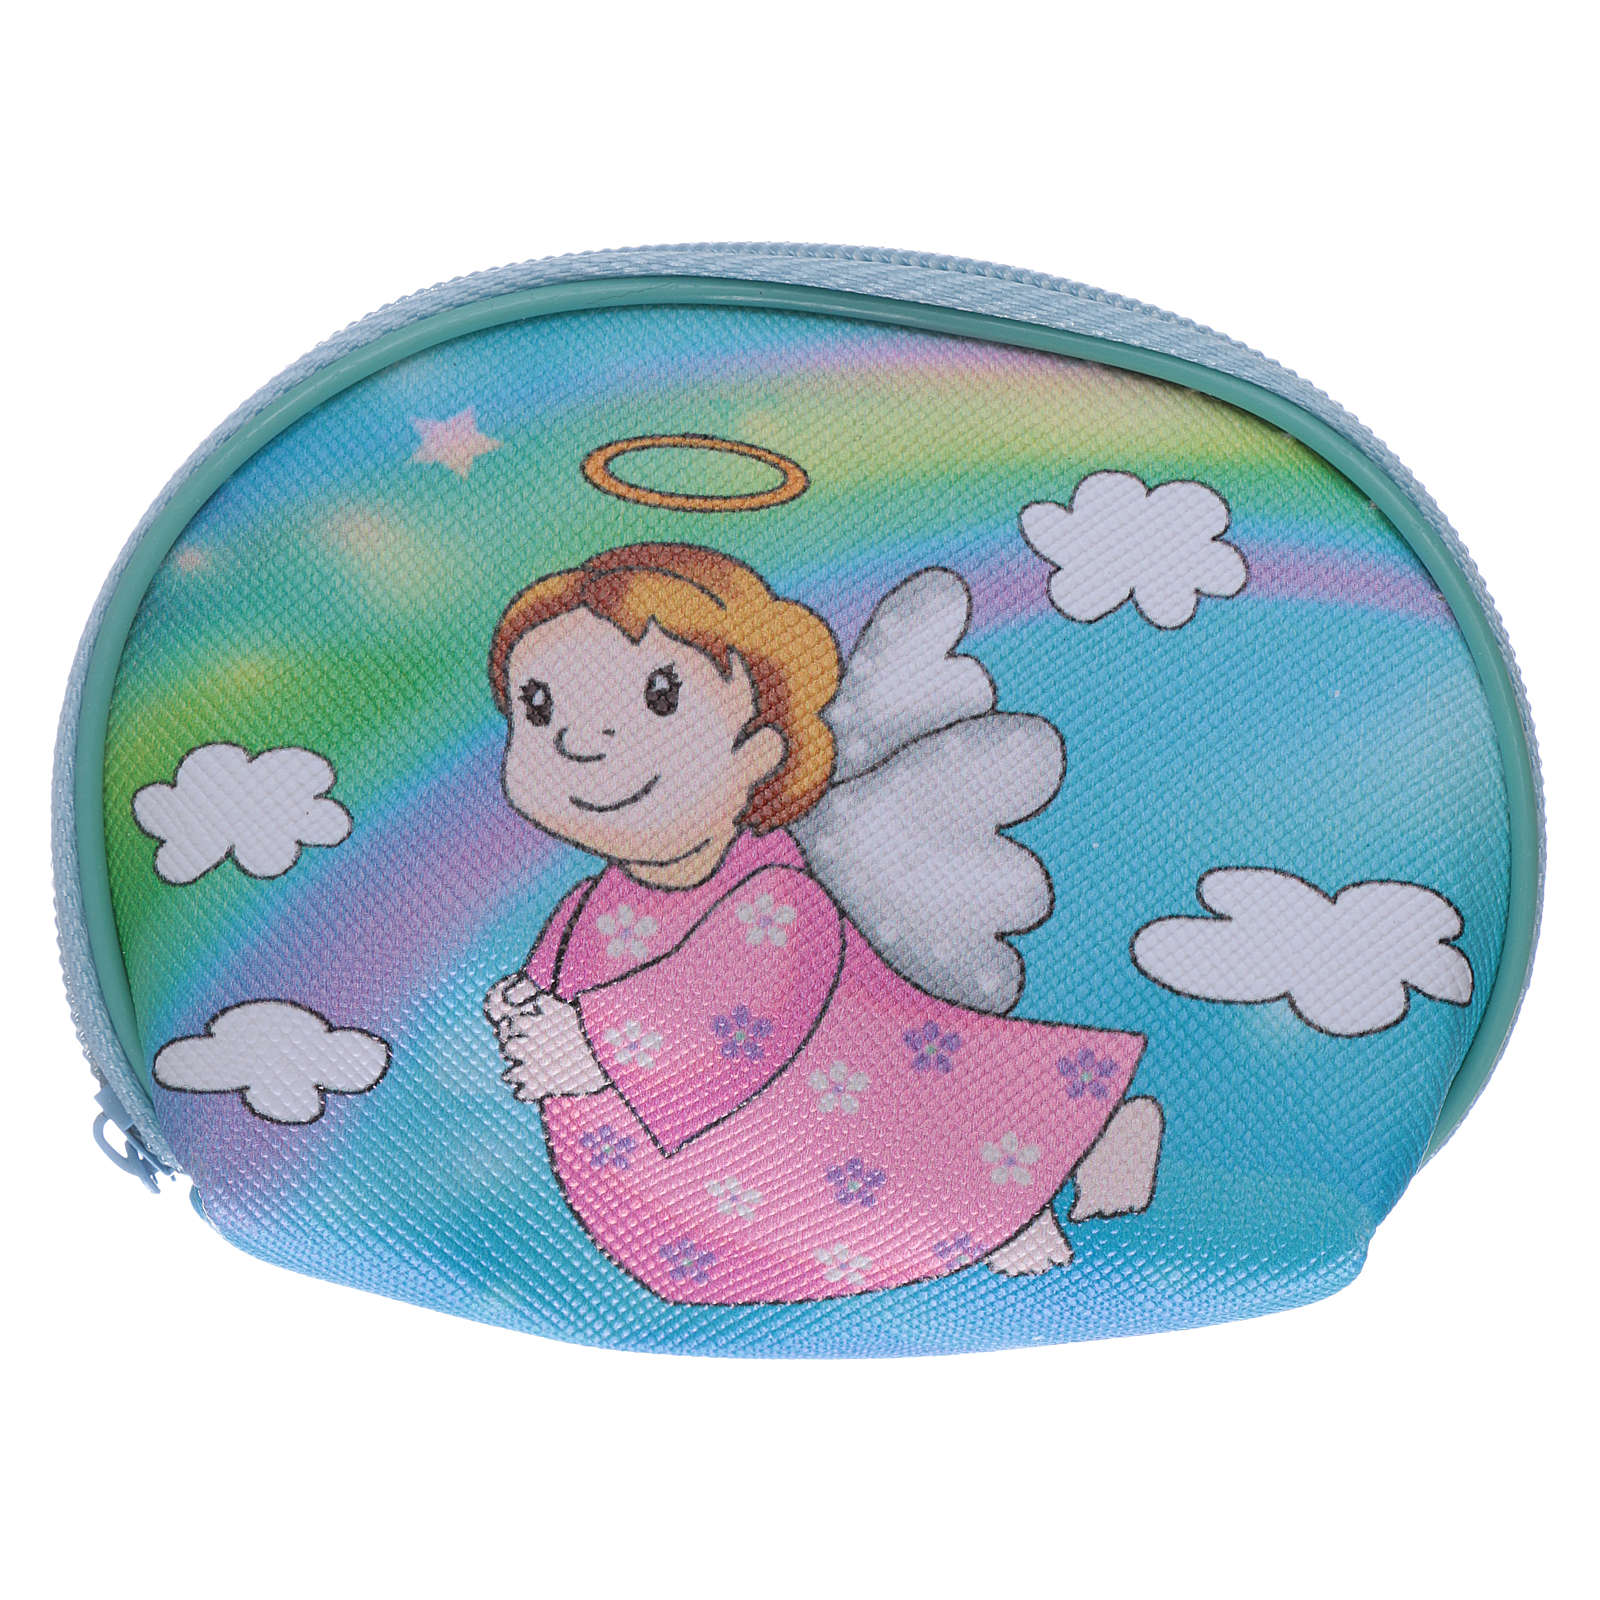 Purse rosary holder 10x8 cm with Angel dressed in pink image 4